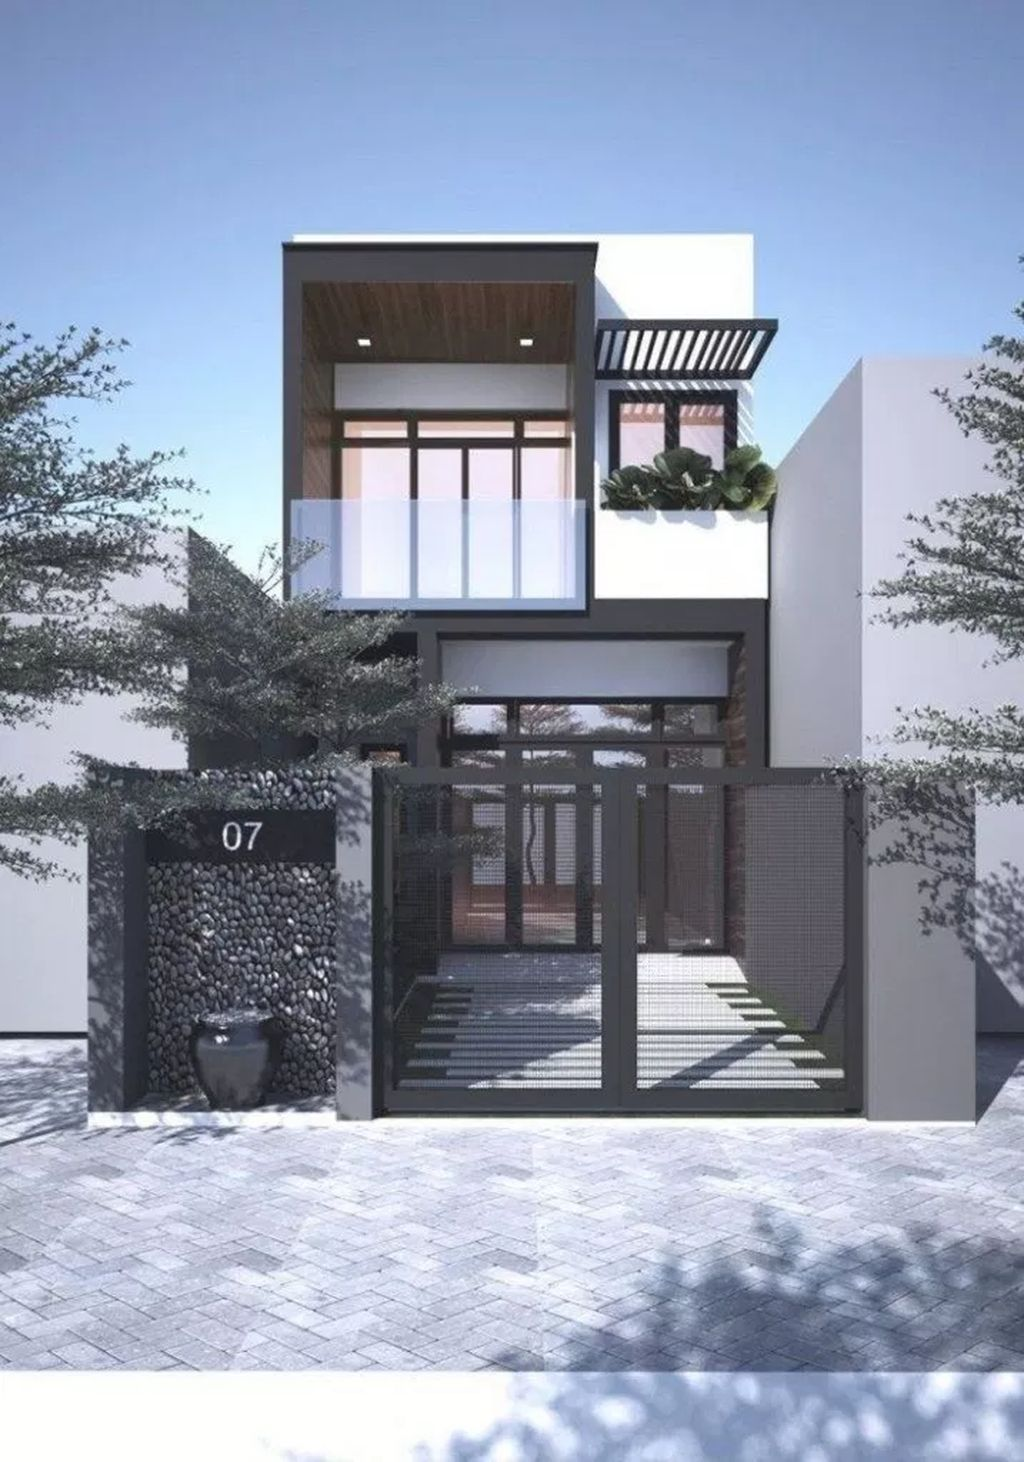 40 Adorable Modern Architecture Building Ideas In 2020 Small